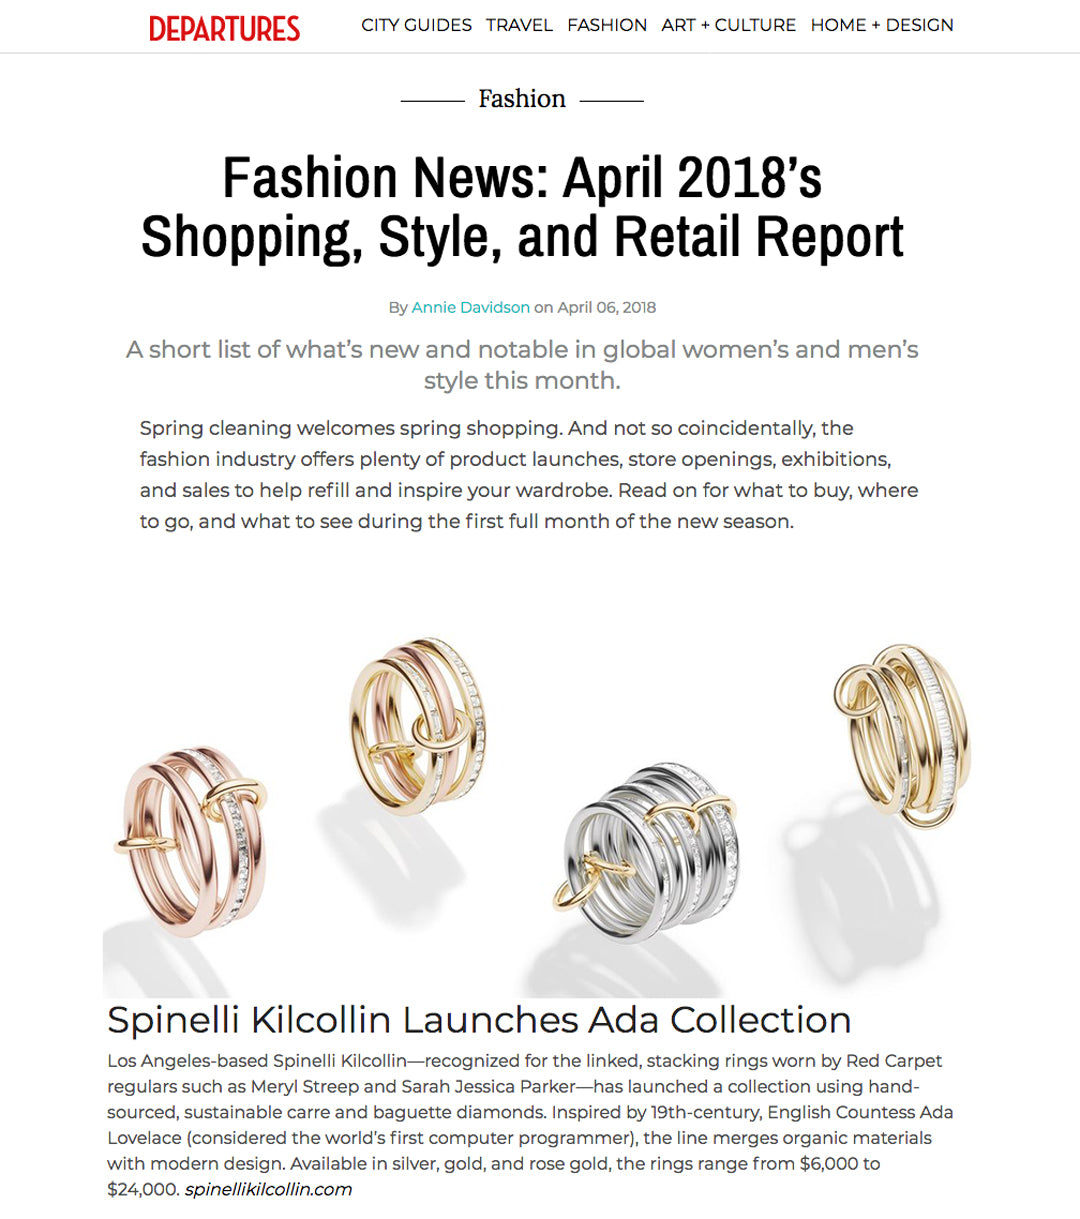 Spinelli kilcollin departures ada collection luxury jewelry